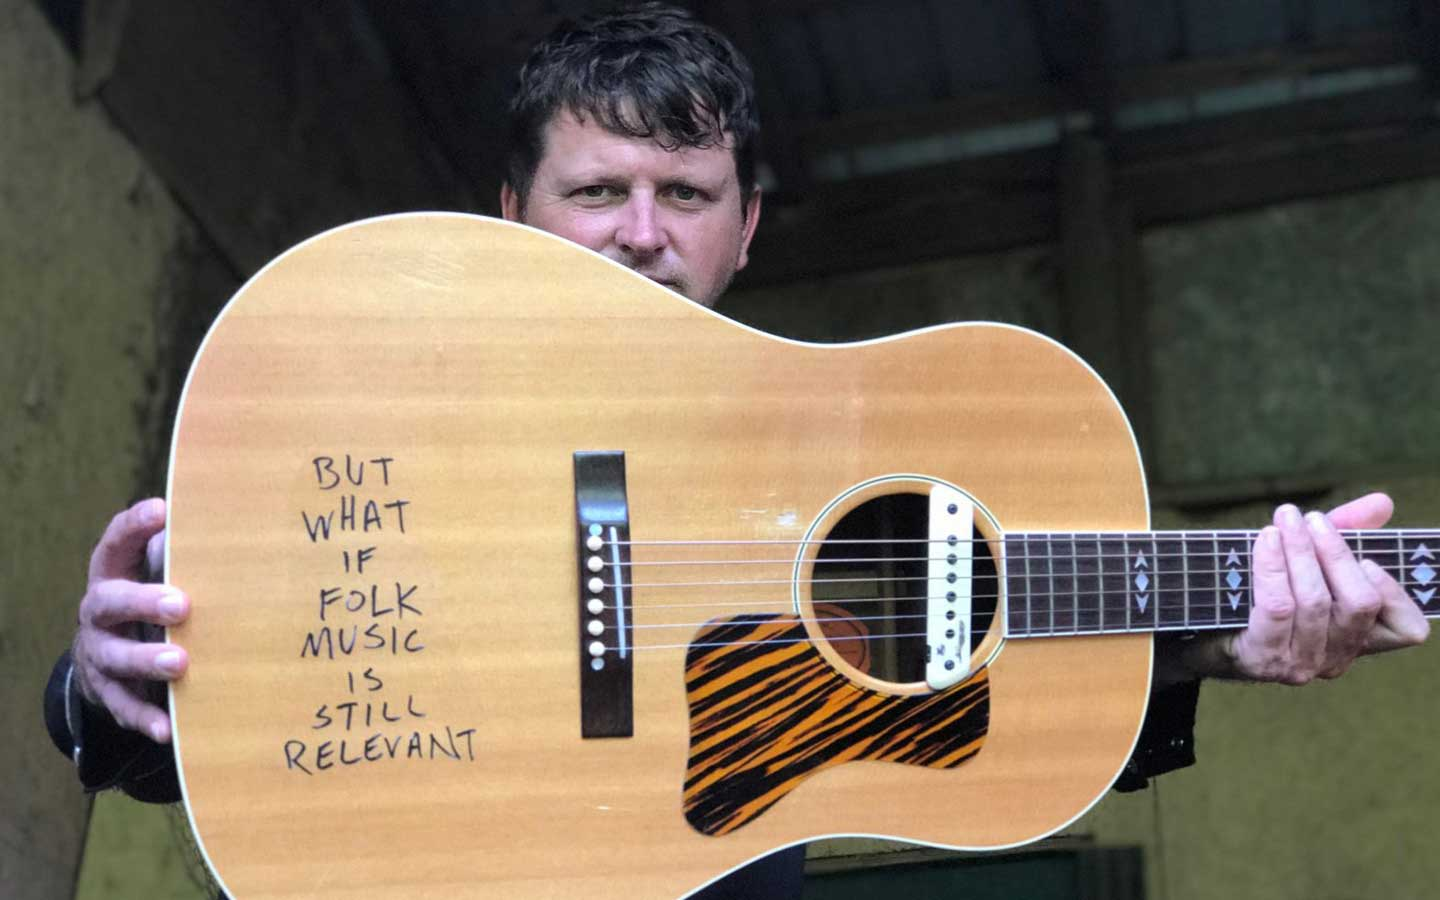 Honest Abe Abe Partridge, Alabama's acclaimed songwriter and folk artist, paints the UK whatever colors he wants